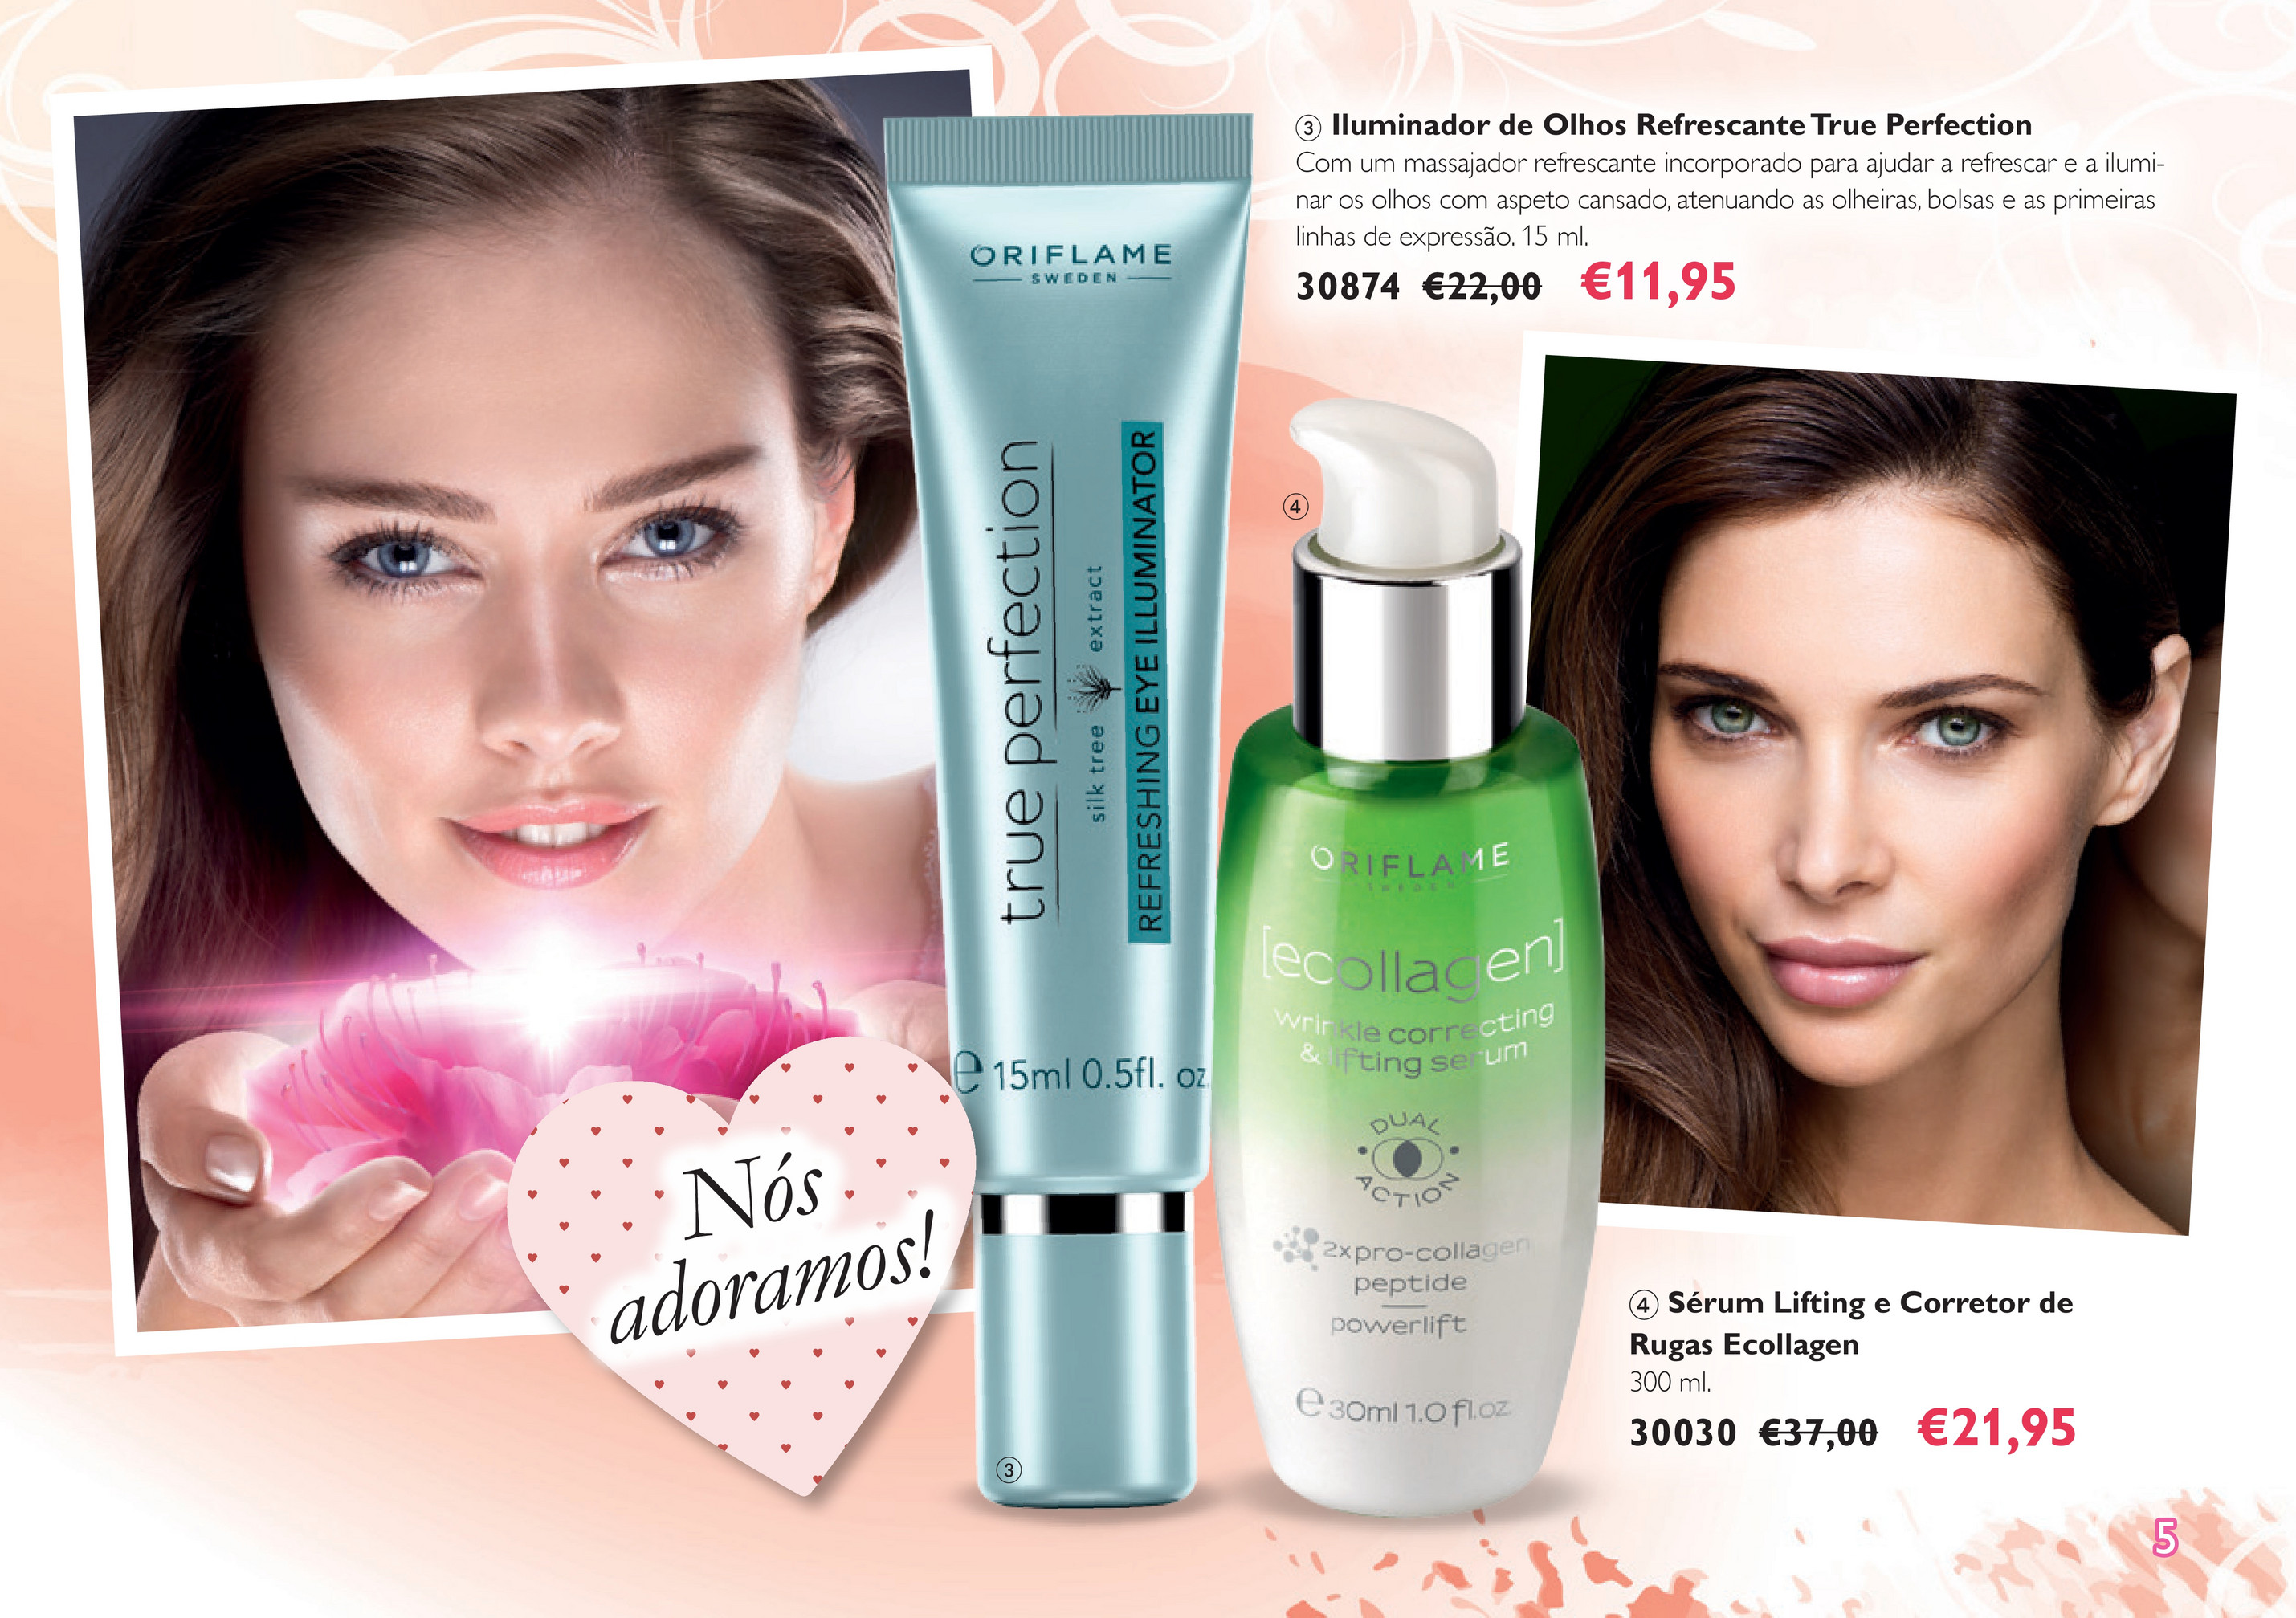 Oriflame Flyer 2017 C02 Page 11 Created With Publitas Com